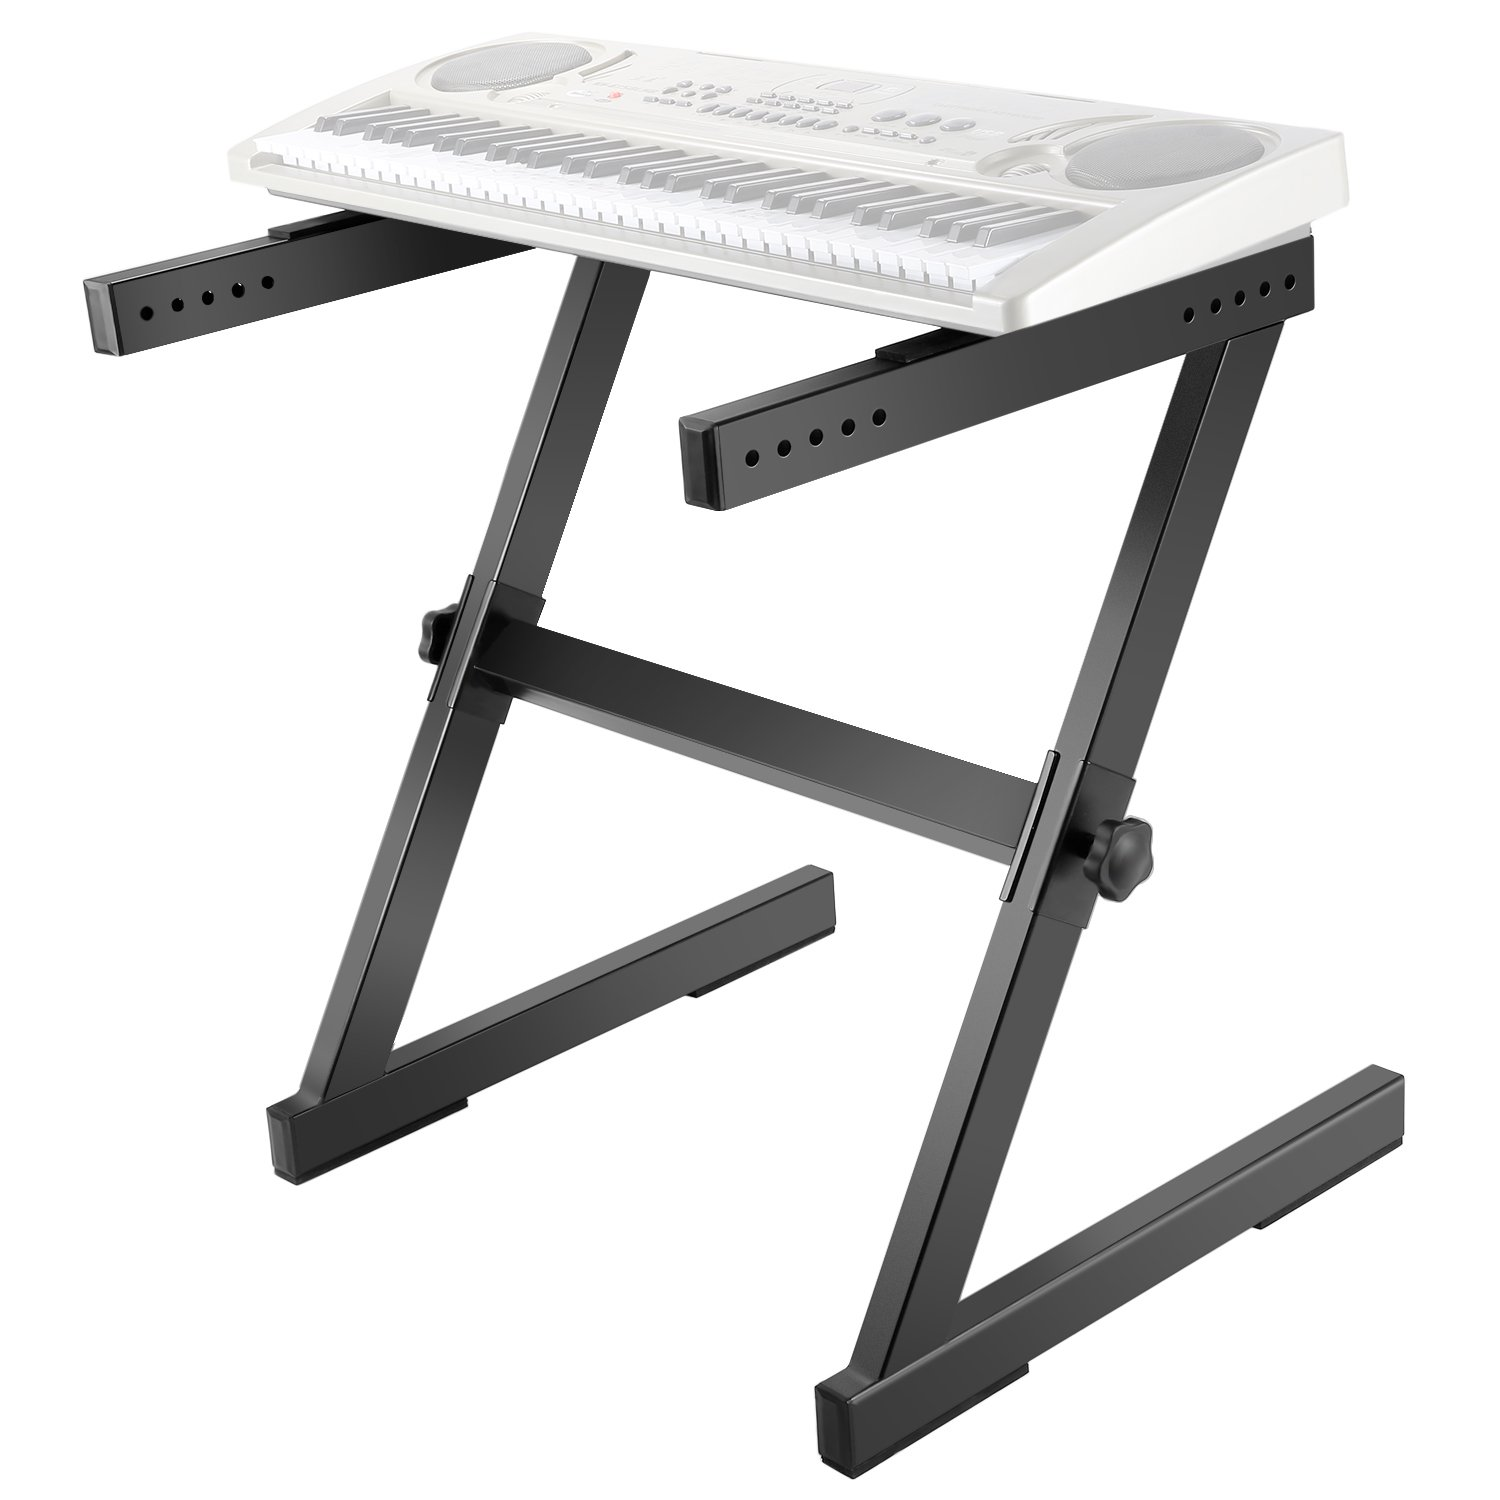 Neewer® Heavy Duty Z-Style Keyboard Stand with 23.2-35.4/59-90cm Adjustable Height and 24.6-40.9/62.6-104cm Adjustable Width 40087971